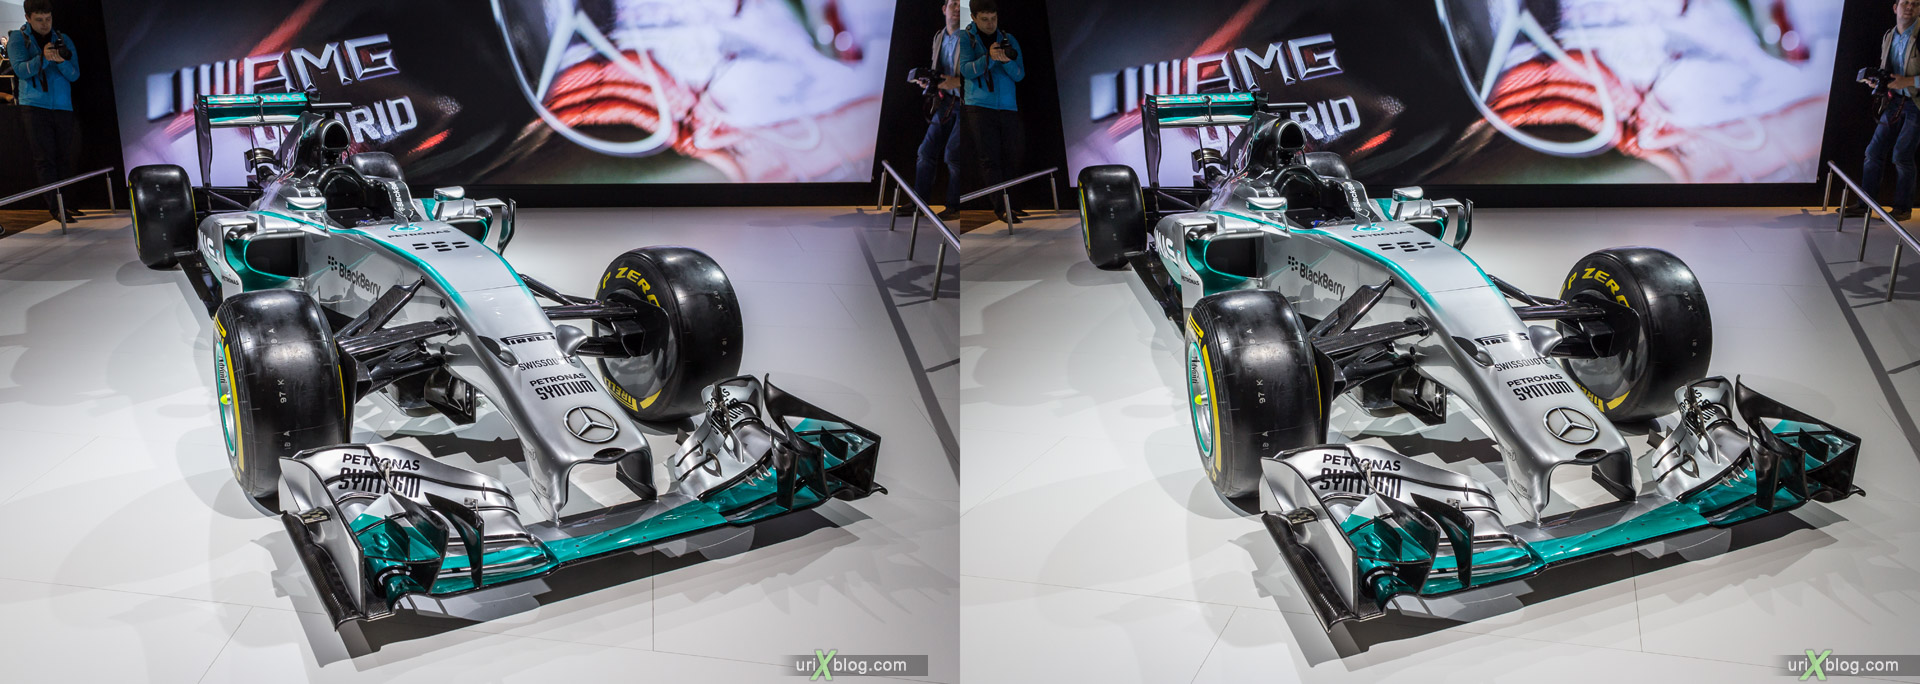 2014, Mercedes-Benz, Moscow International Automobile Salon, MIAS, Crocus Expo, Moscow, Russia, augest, 3D, stereo pair, cross-eyed, crossview, cross view stereo pair, stereoscopic